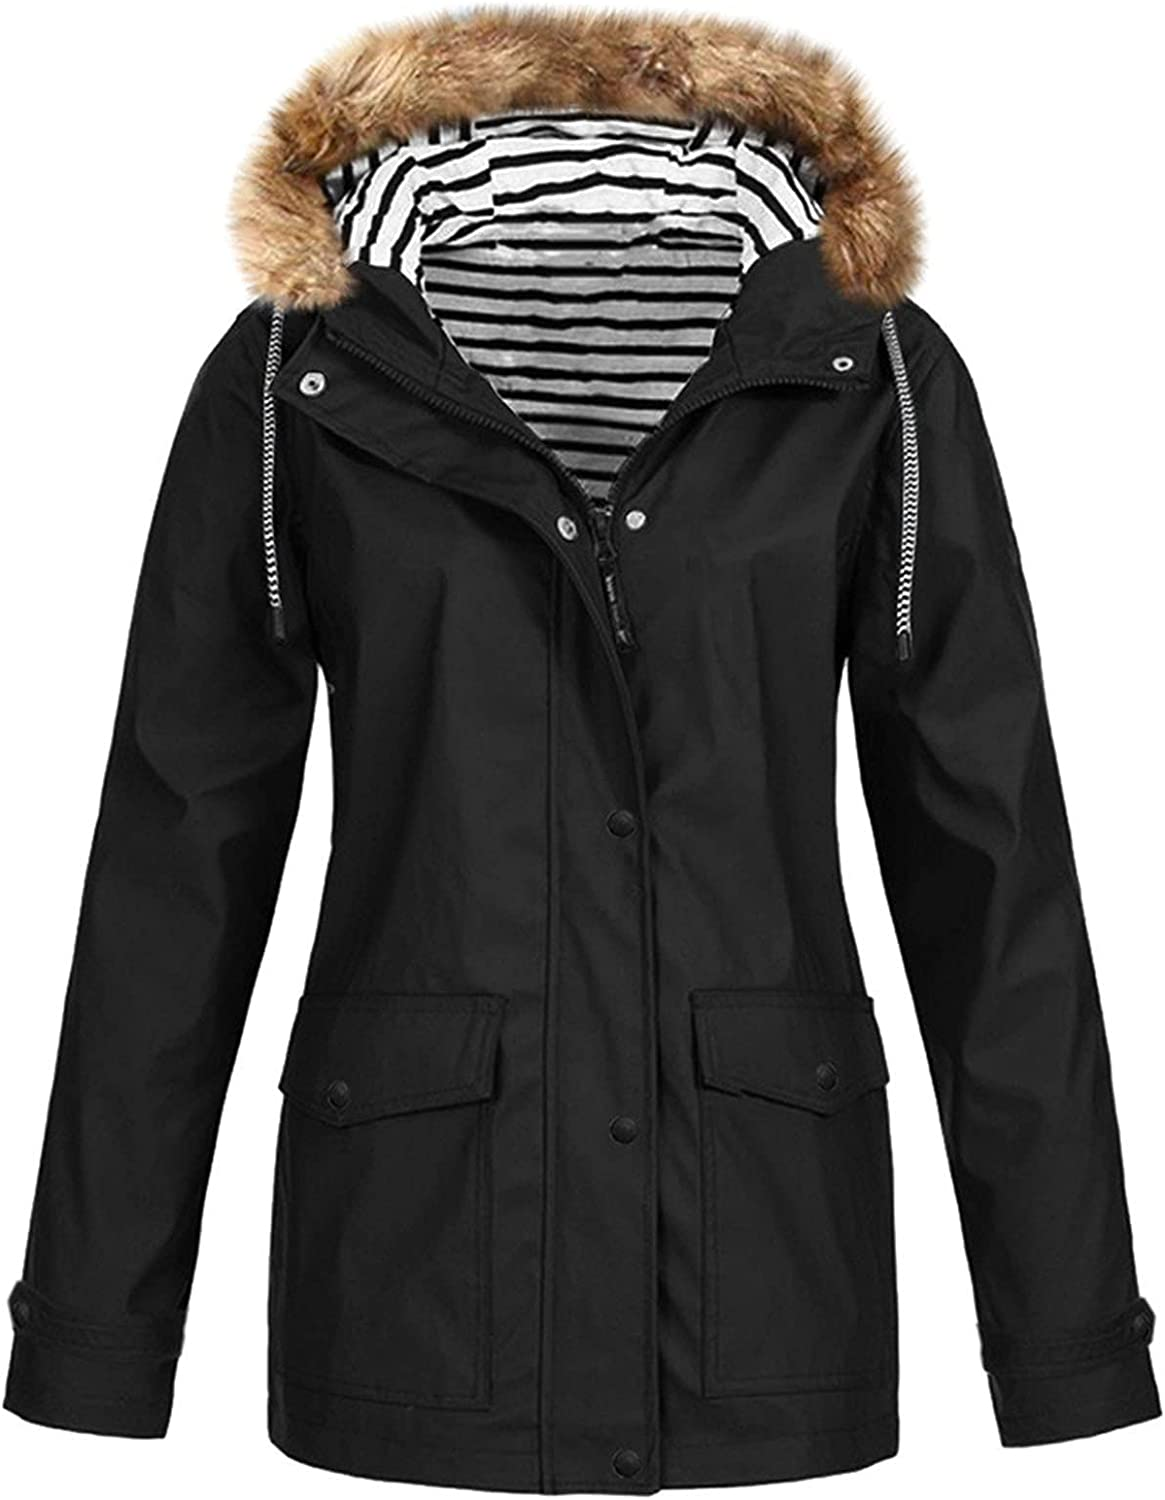 Solid Jacket for Women Winter Coat Fall Fashion Casual Windproof